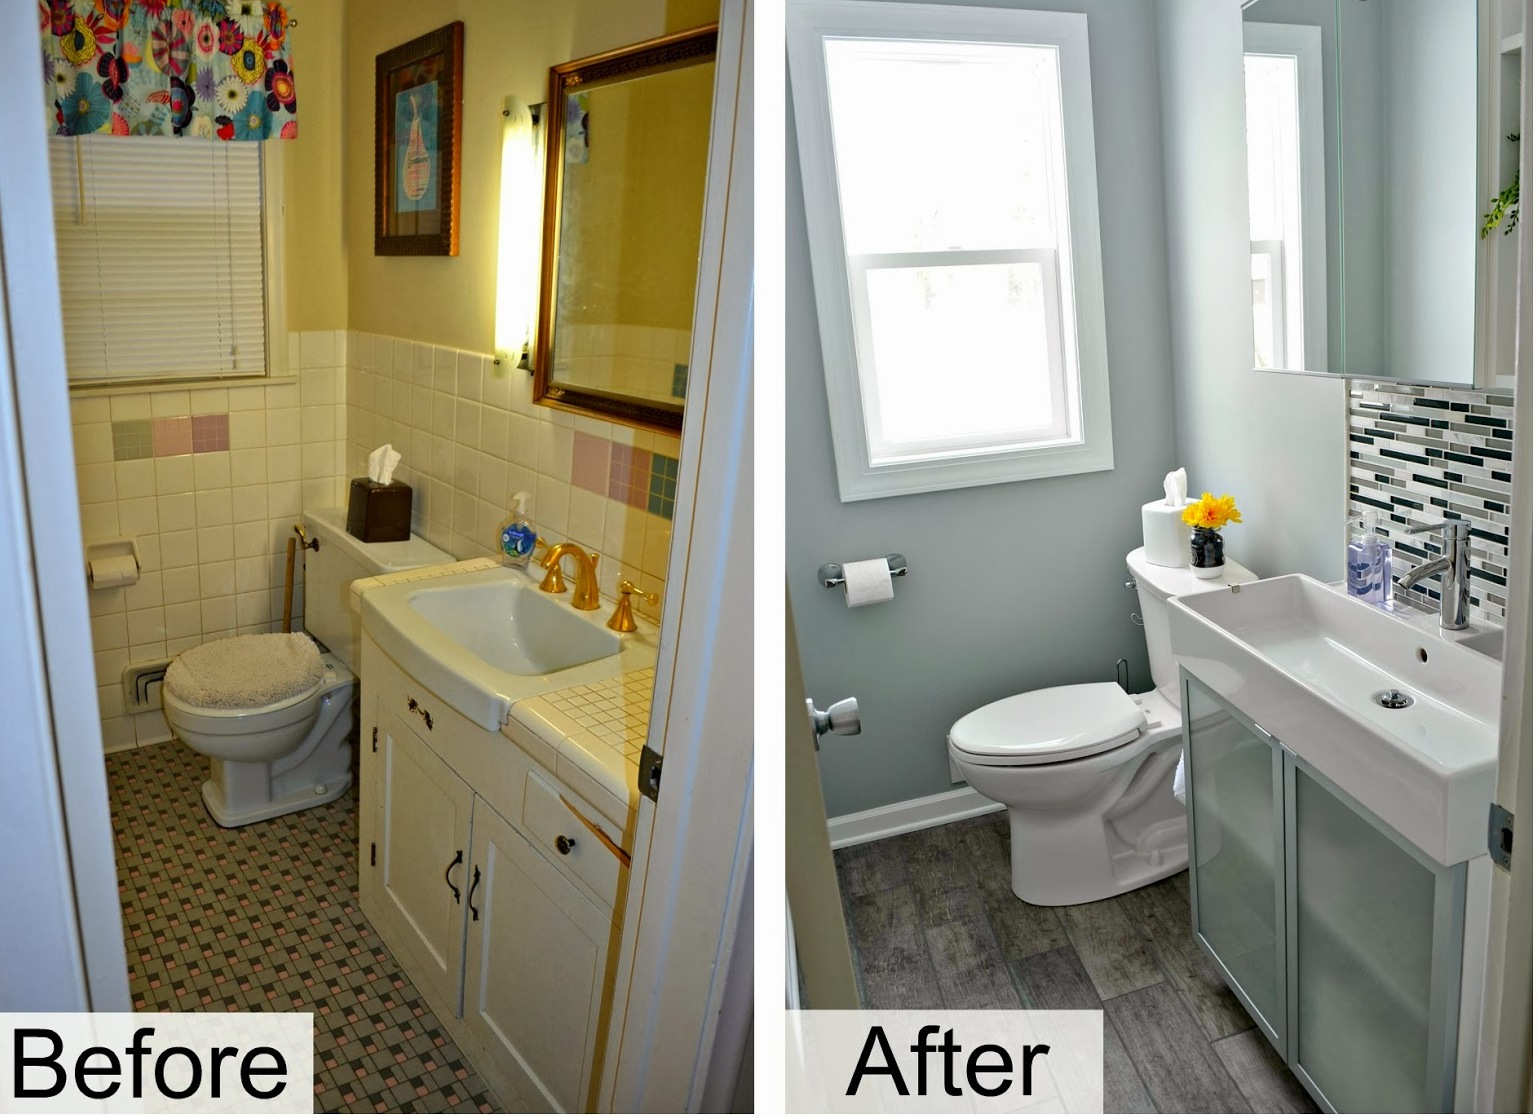 Kitchens Bathrooms Remodel Affordable Construction